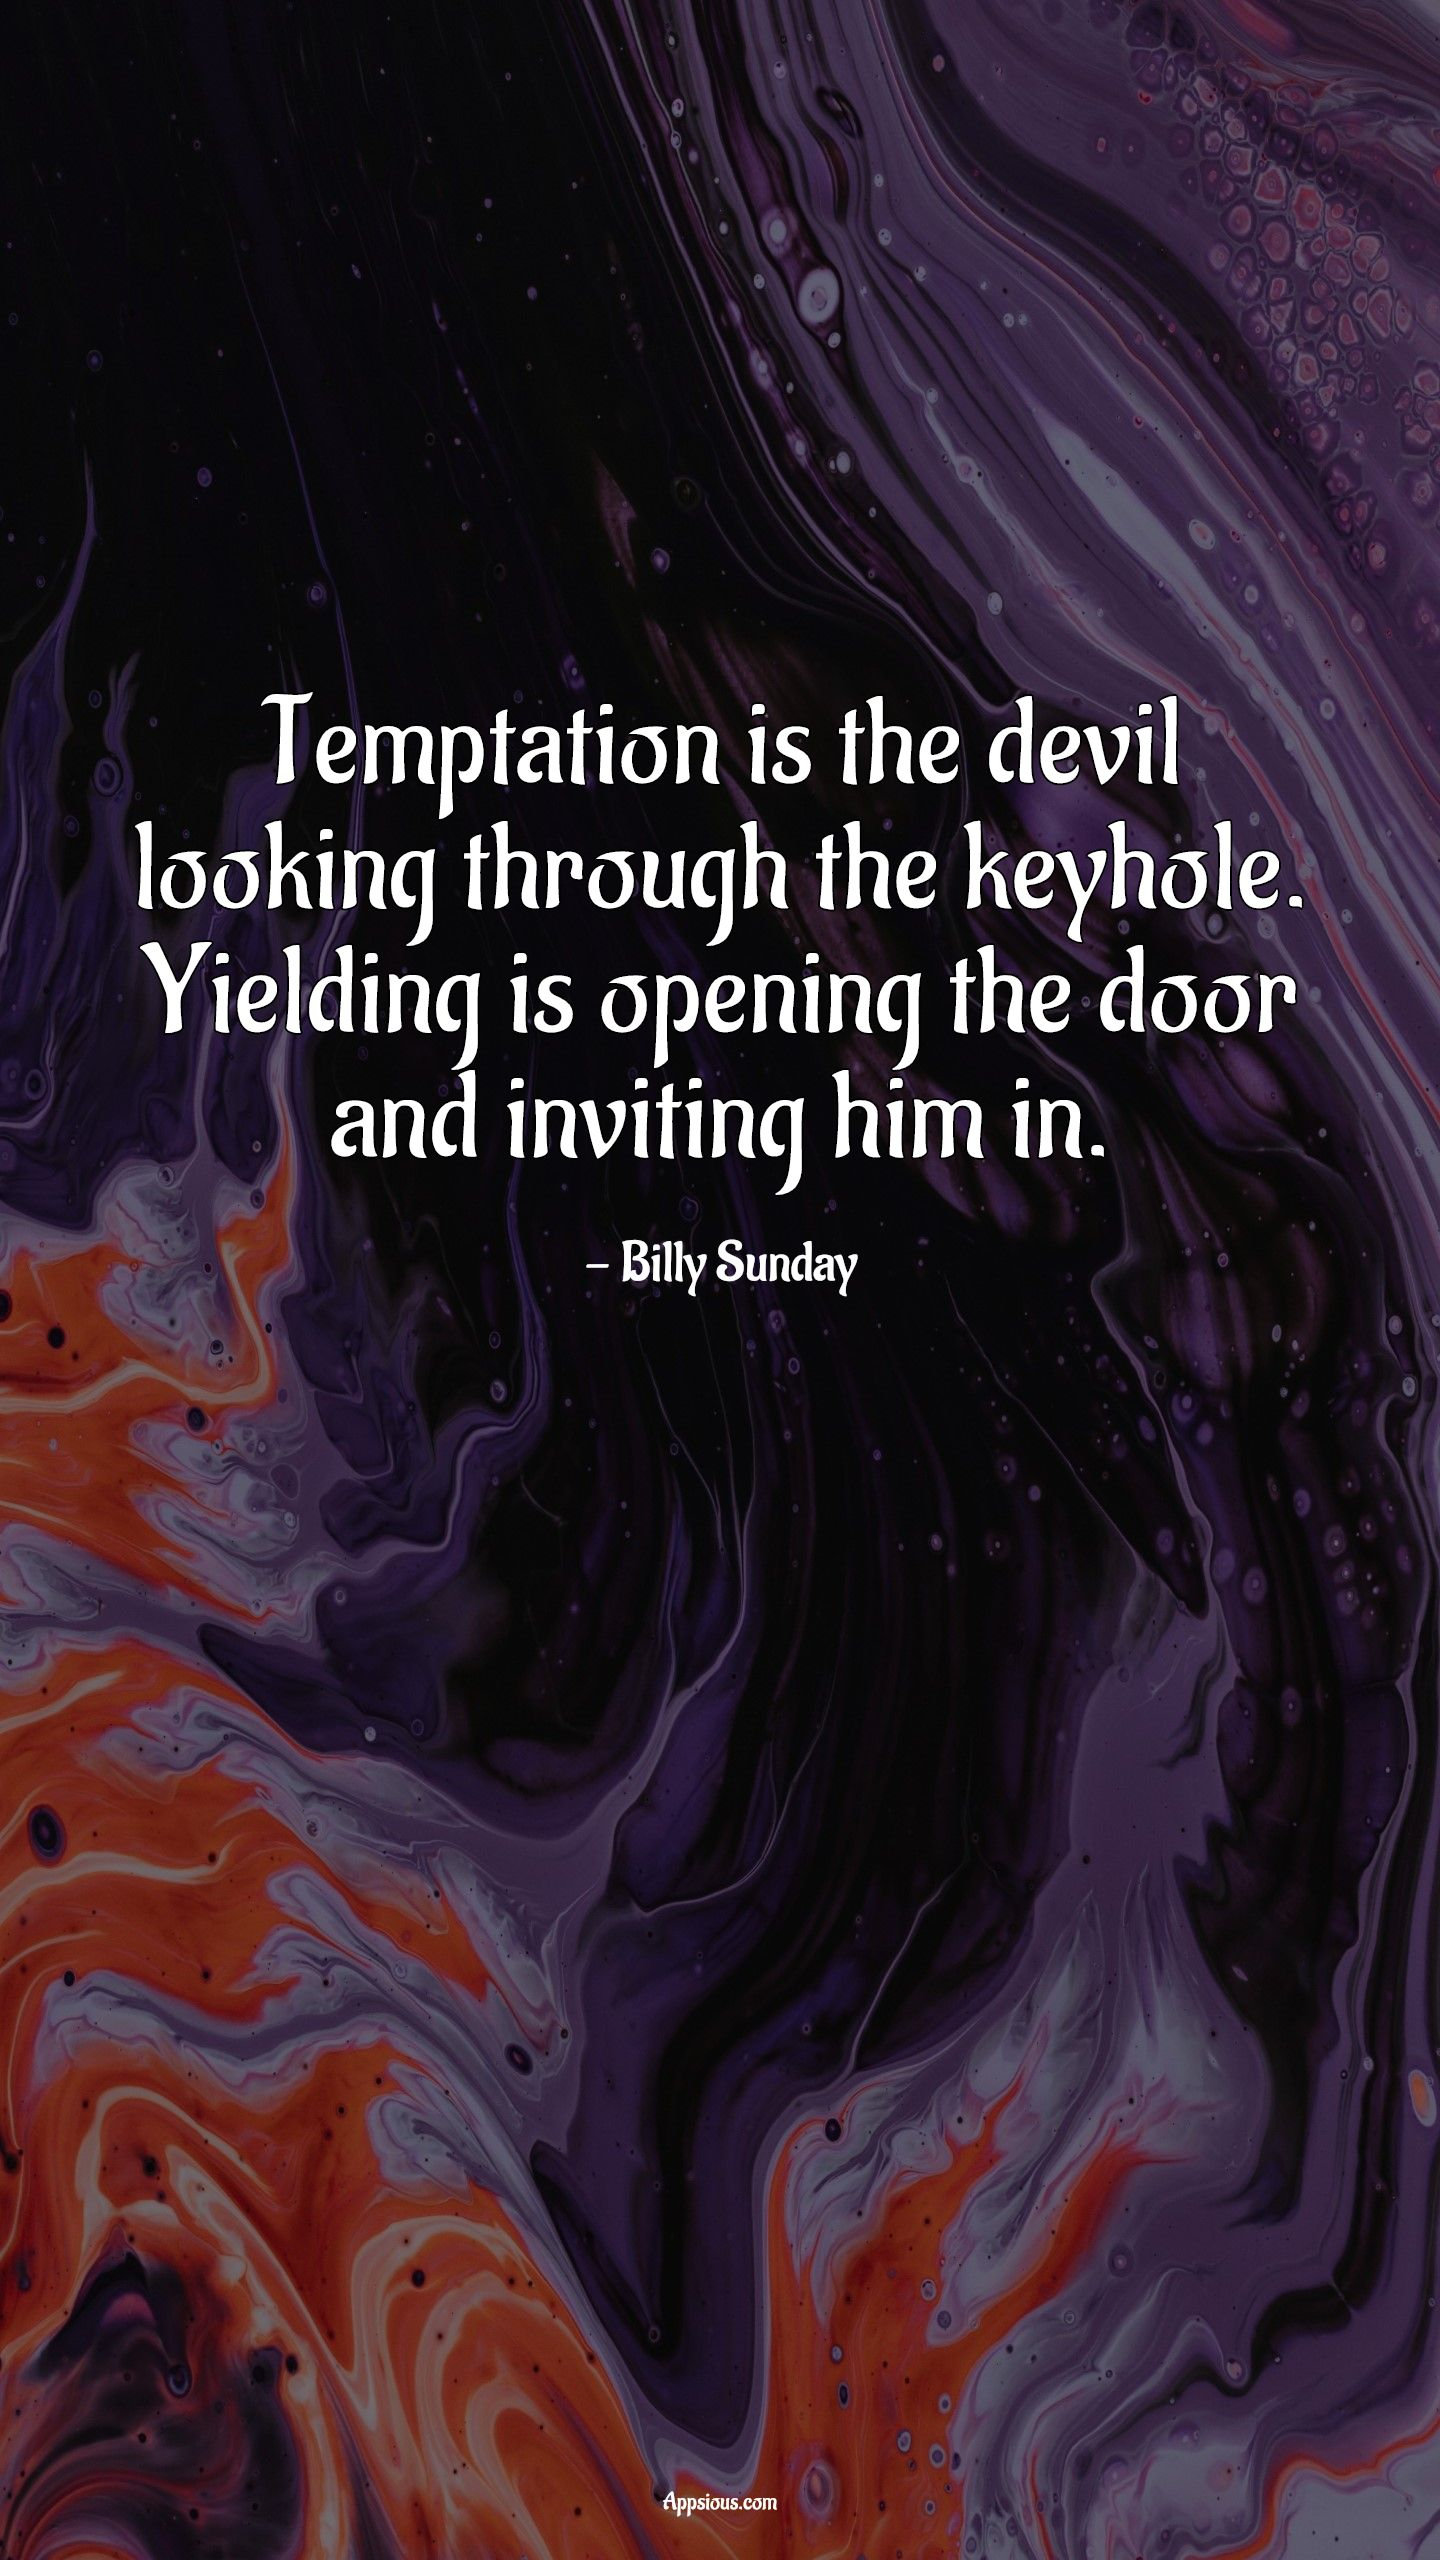 Temptation is the devil looking through the keyhole. Yielding is opening the door and inviting him in.